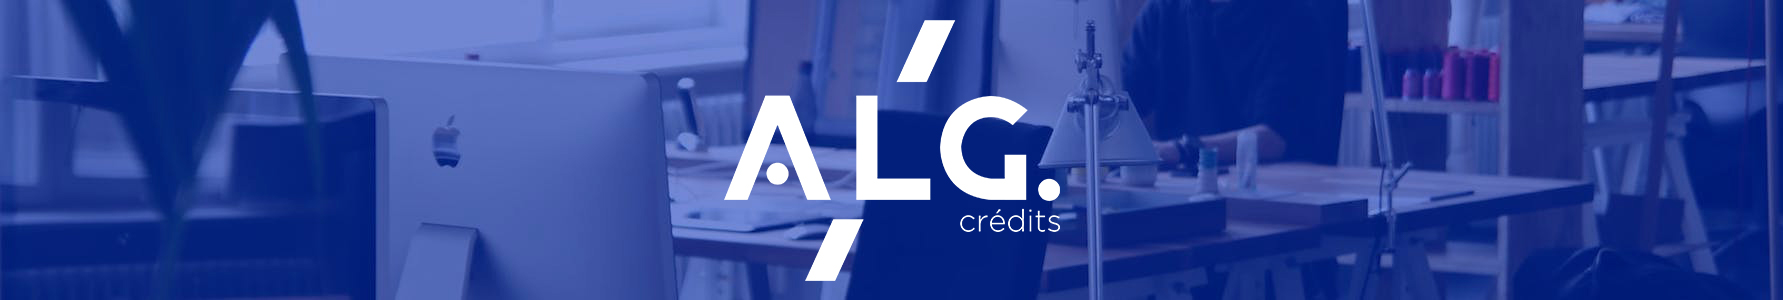 courtier-financement-alg-credits-odace